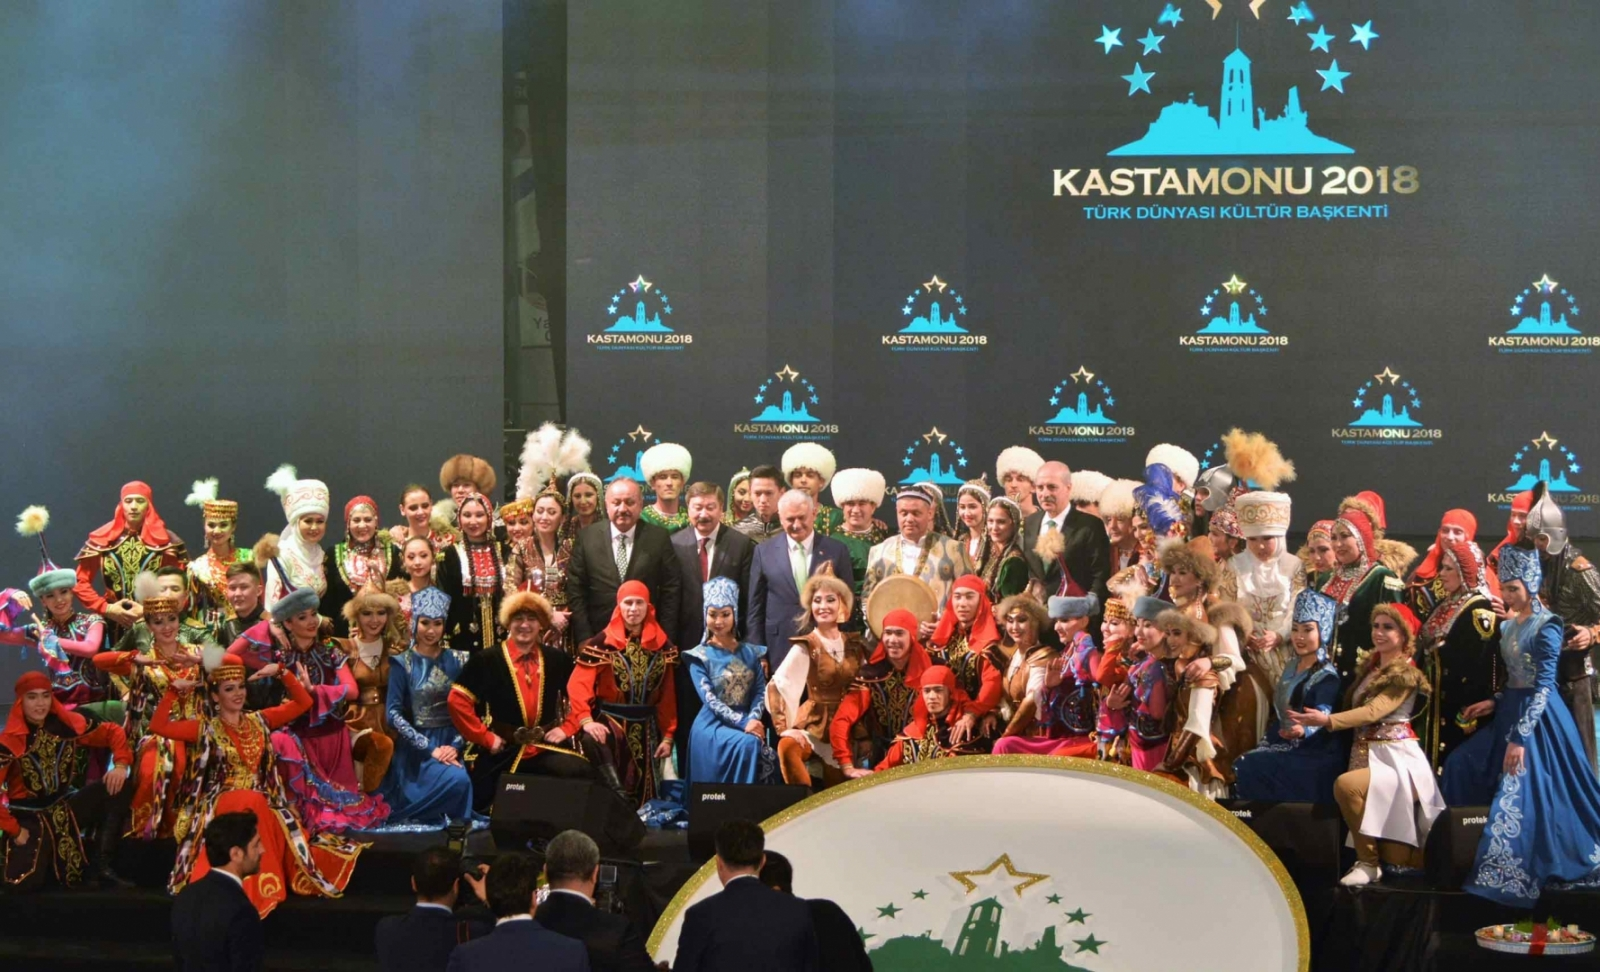 Wonderful Opening Event for Kastamonu, the Cultural Capital of the Turkic World 2018